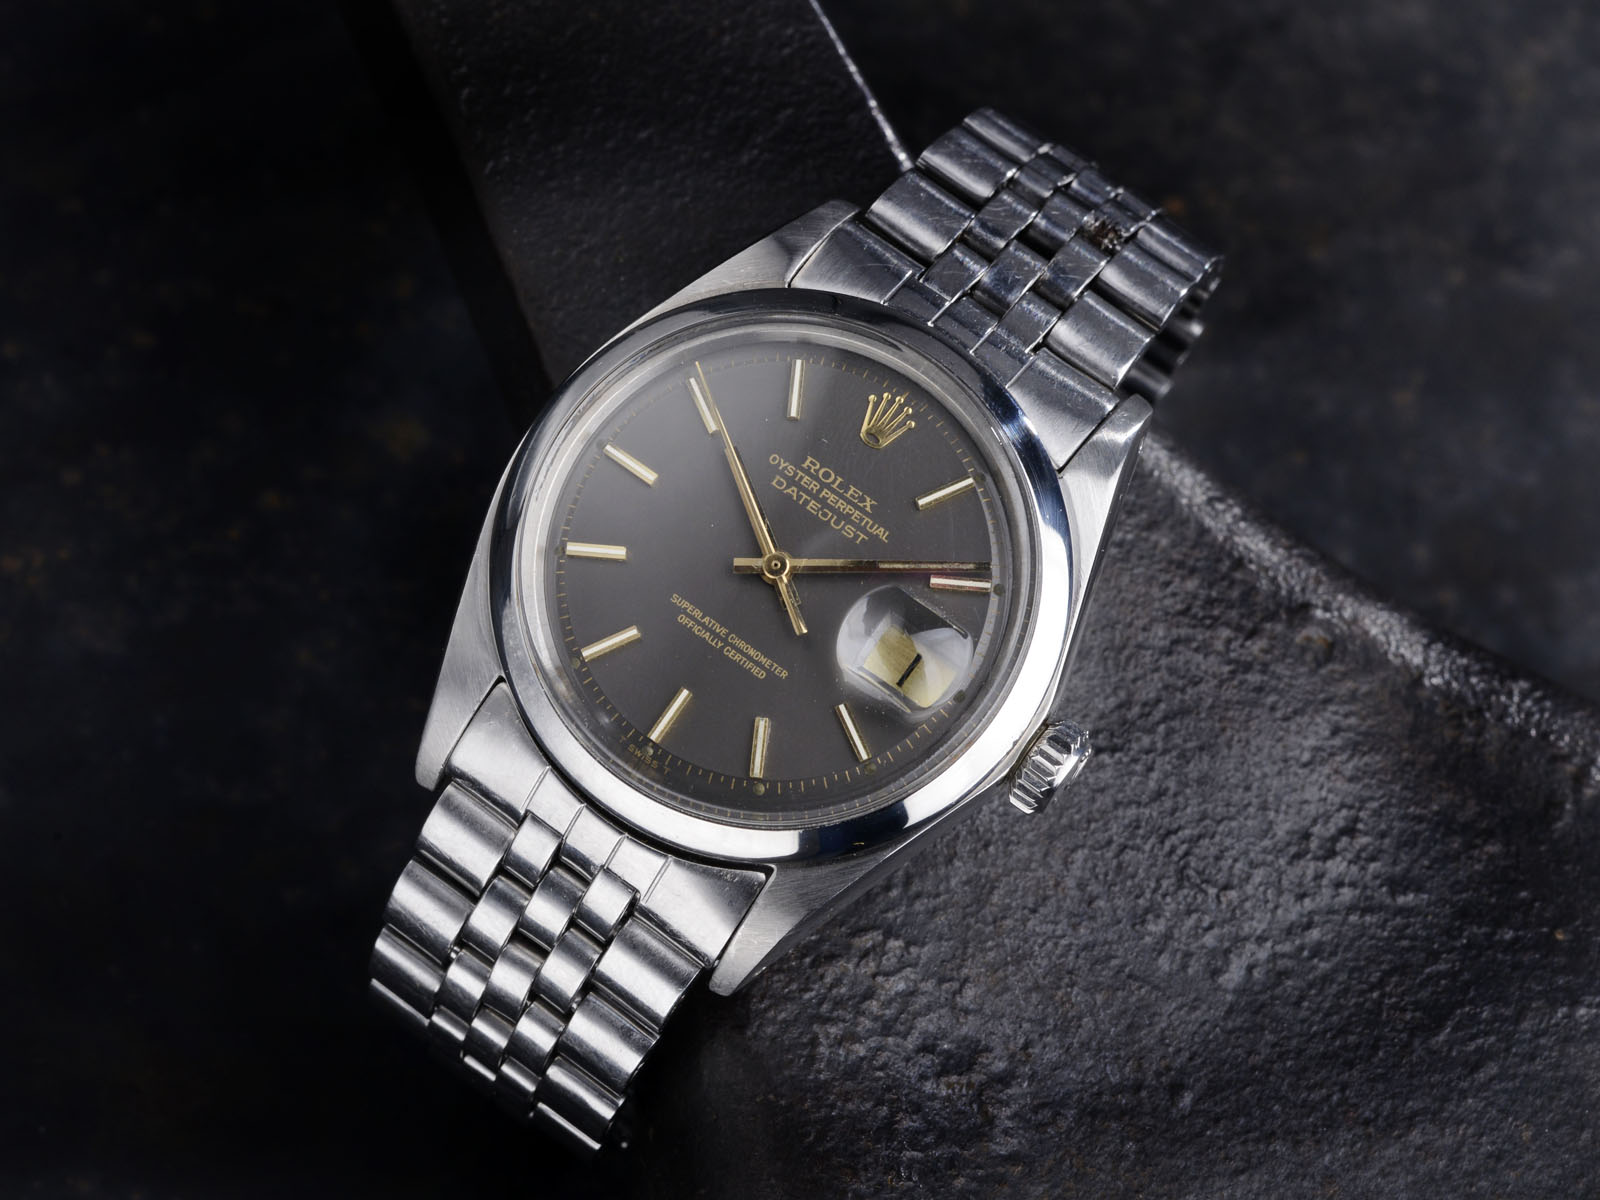 B&S W-99 Rolex Datejust 1600 gilt 4:15 01